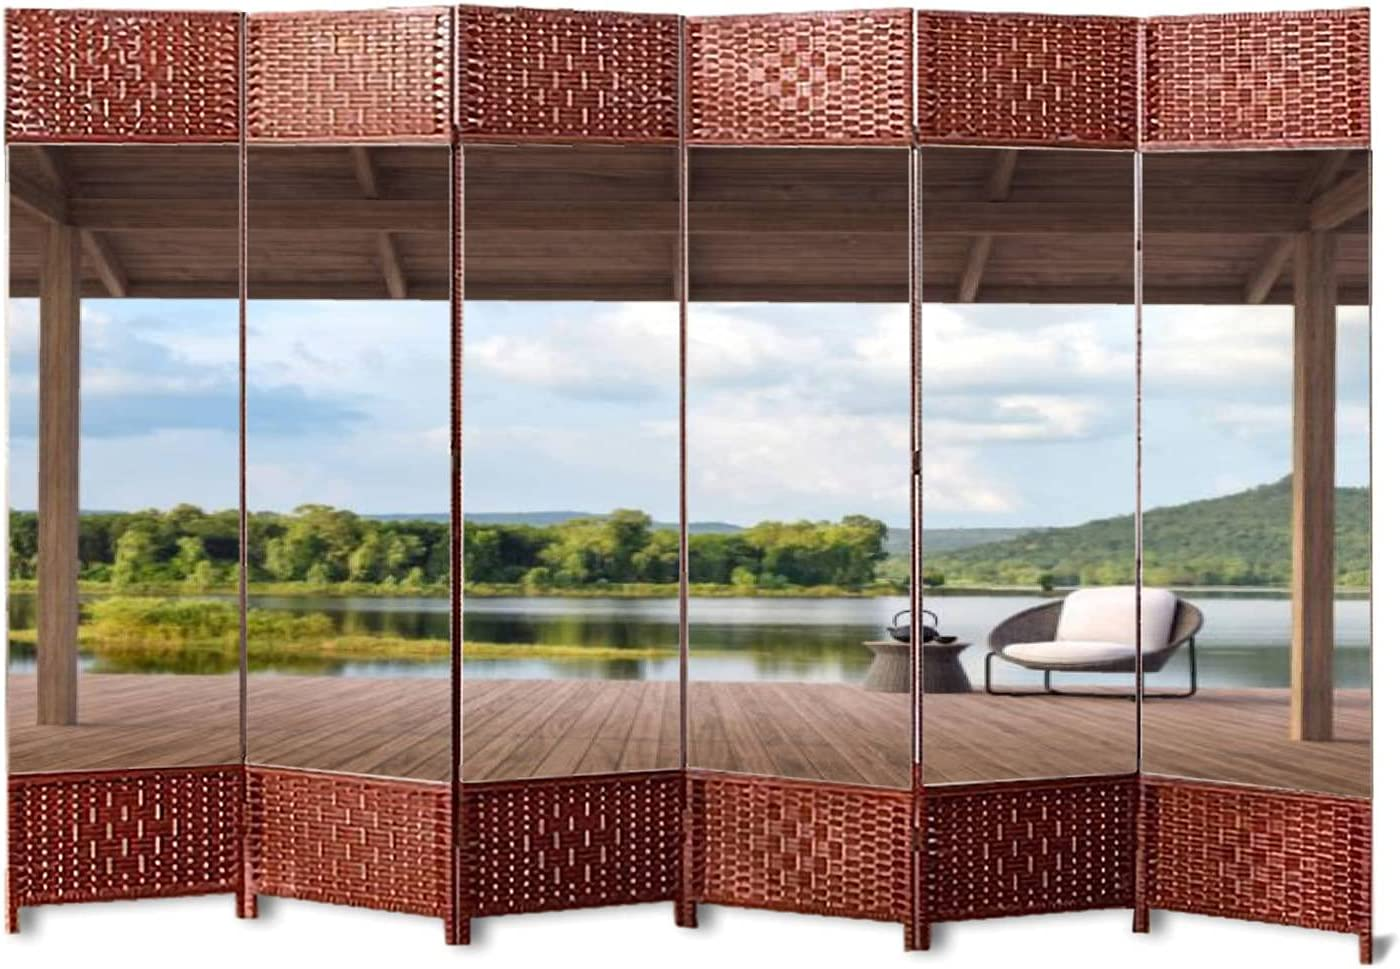 6 Panels Super intense SALE Weave Folding Room Safety and trust Divider Terrace Wood with Beautiful